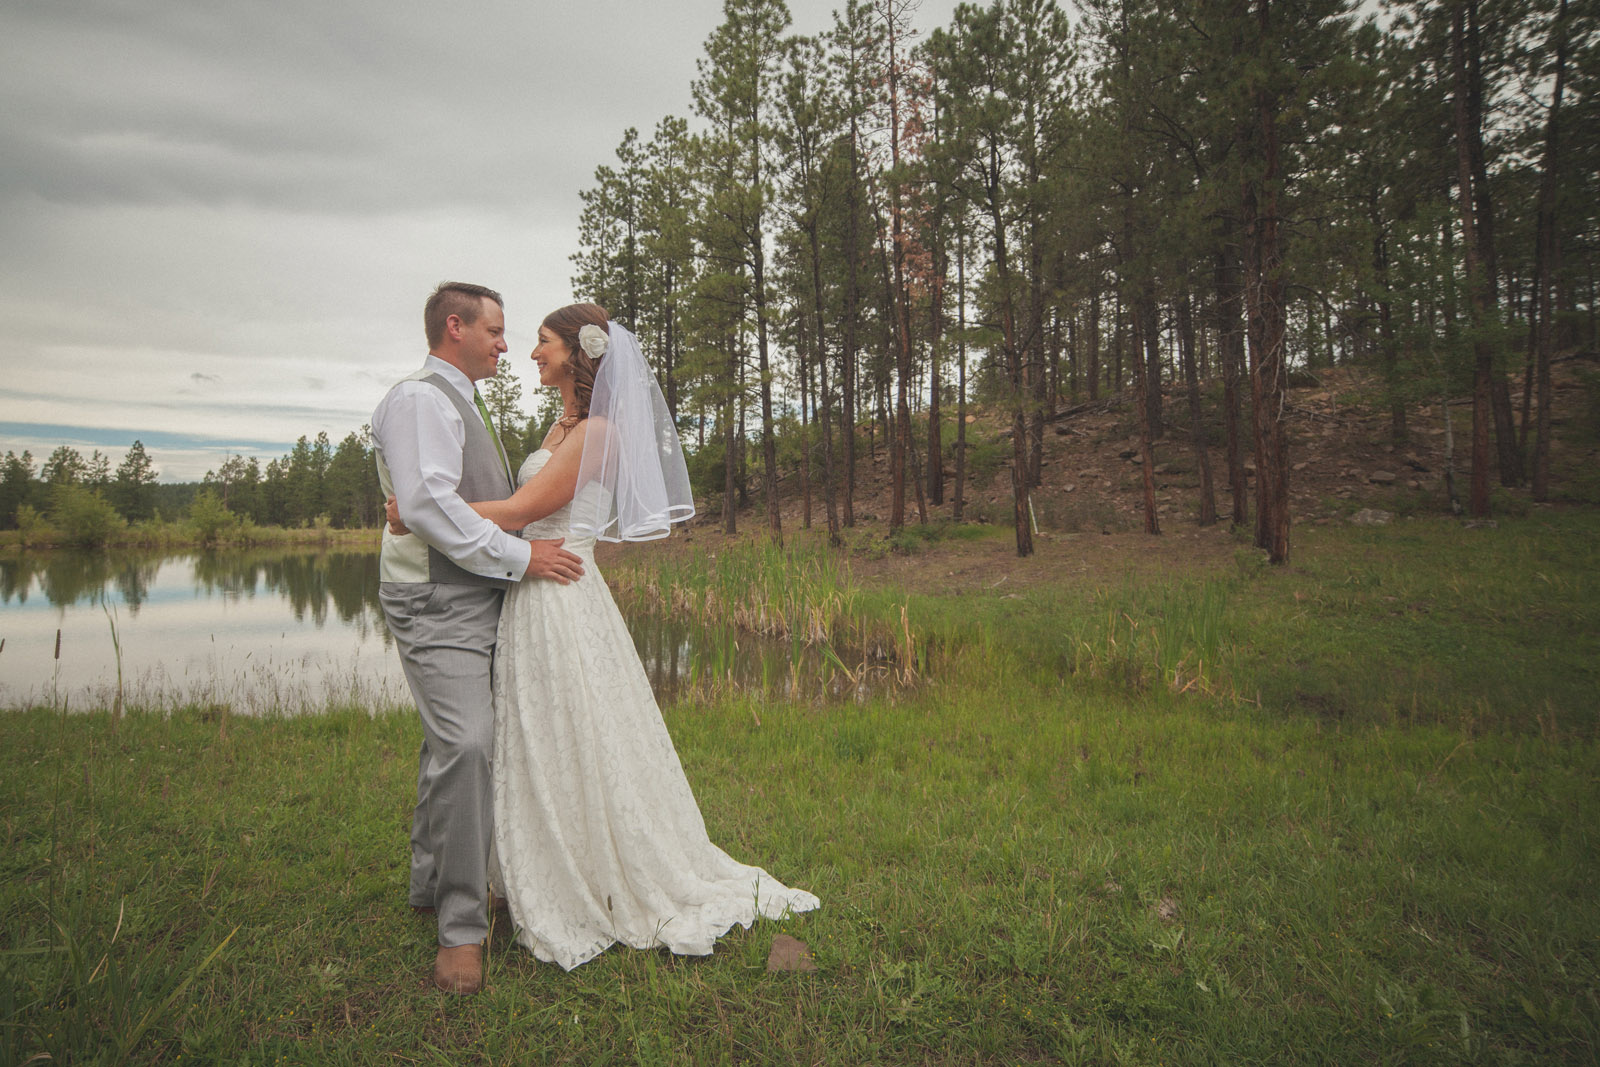 077-lake-trees-groom-bride-wedding-cabin-woods-forest-pictures-photos-dress-photography-portraits-first-look-firstlook-reveal-happy-farmington-aztec-durango-mancos-co-nm